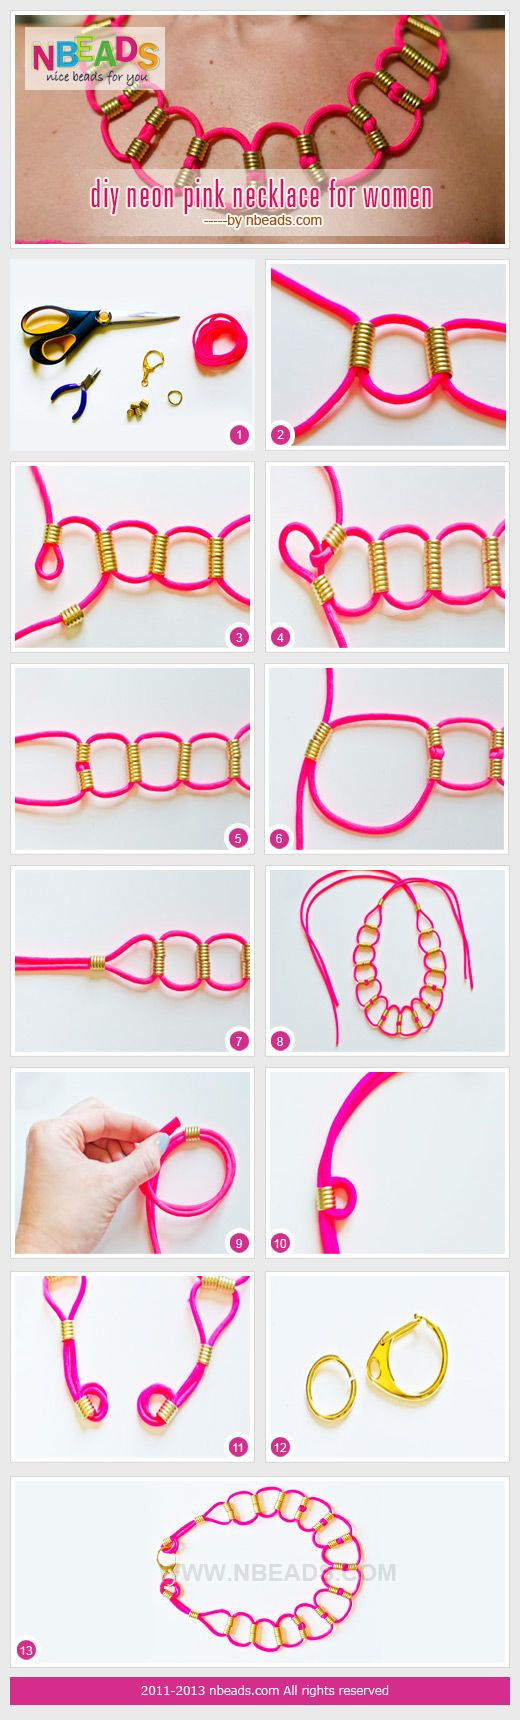 Summary: Easy for you to make a neon pink necklace. These are bright pink necklaces for women. You need to know how to make loops with springs beads secured. A marvellous piece incorporates with your strapless dress, doesn't it? How about trying on it to